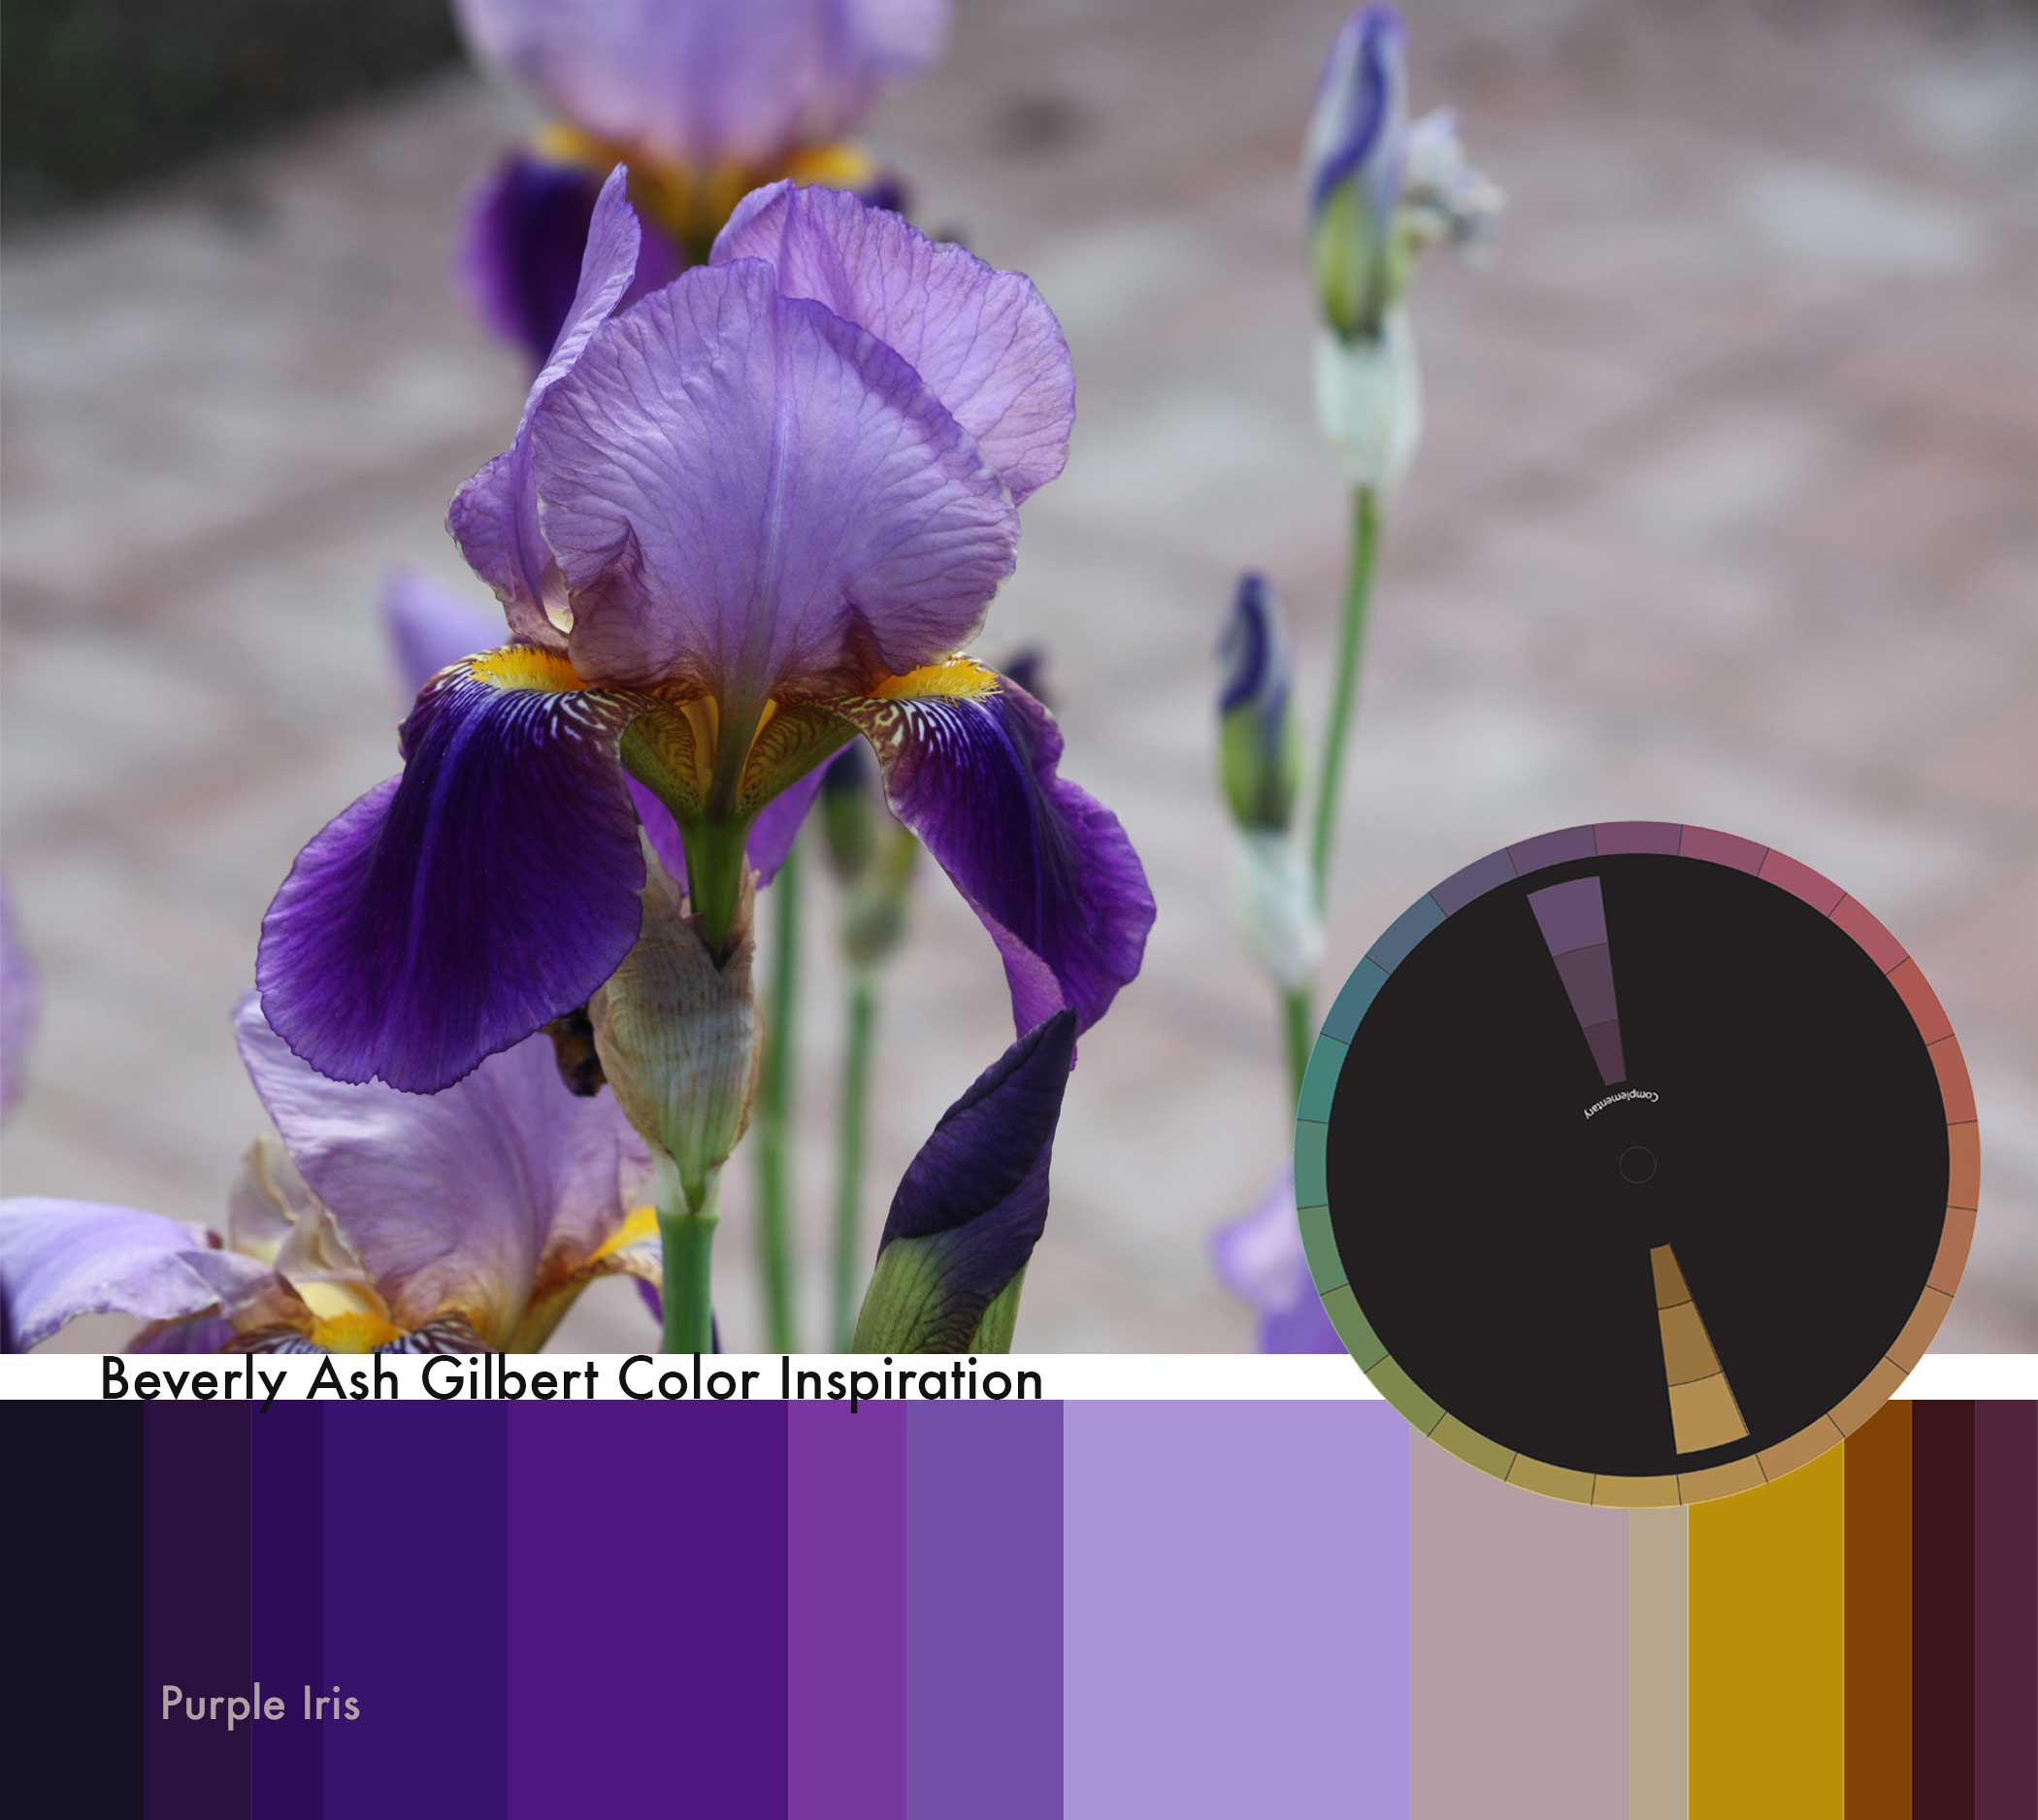 ColorInspiration_PurpleIris_small.jpg